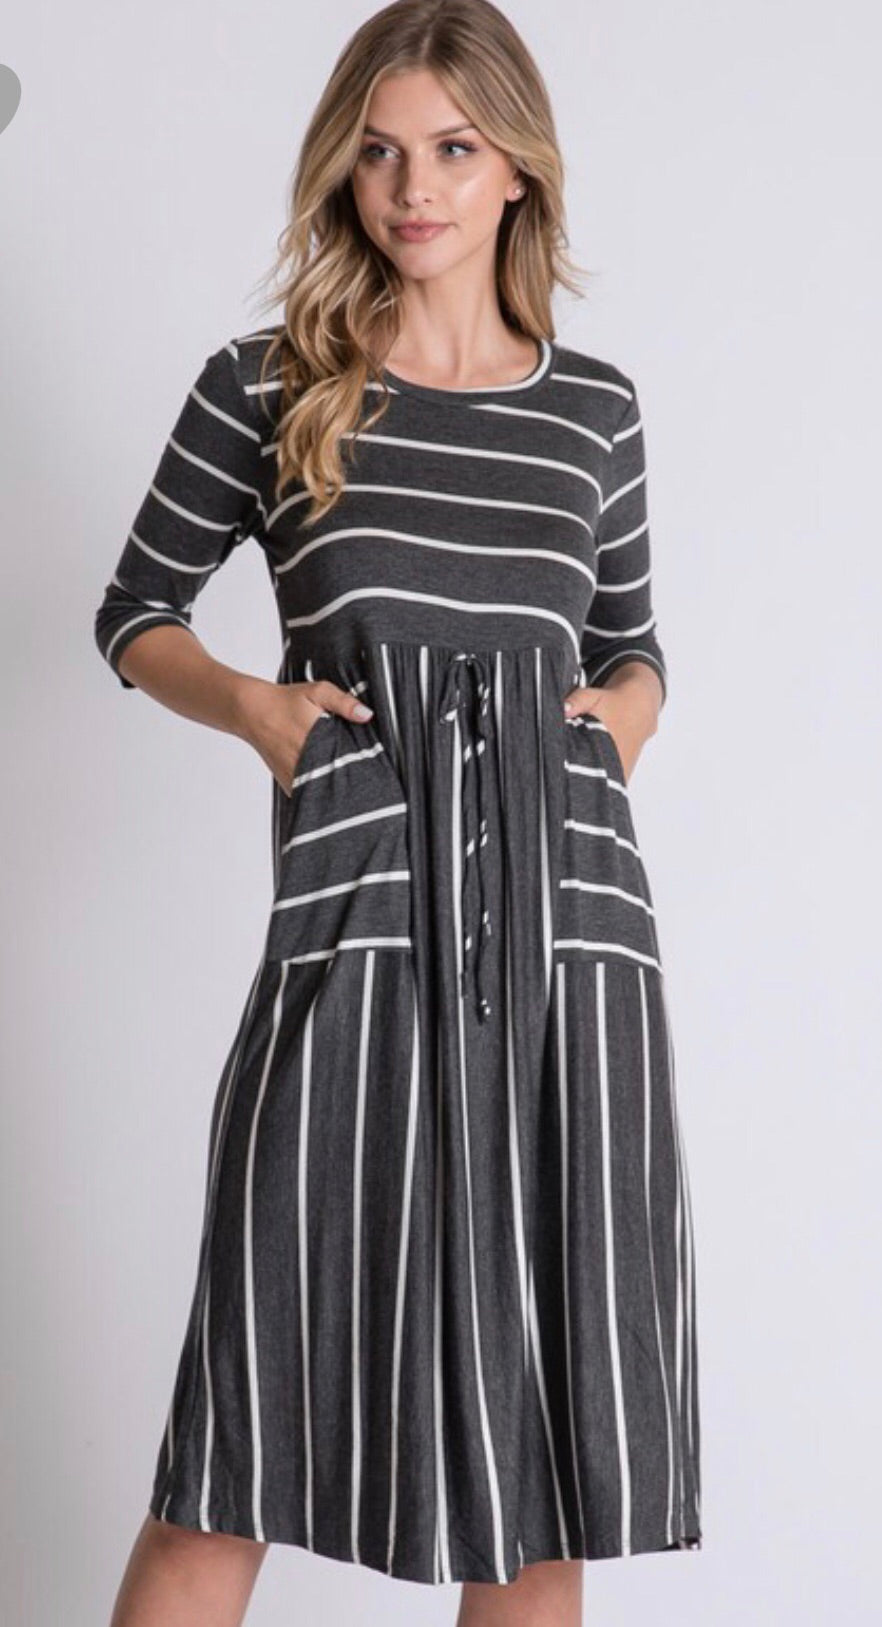 Destiny Charcoal Striped Dress